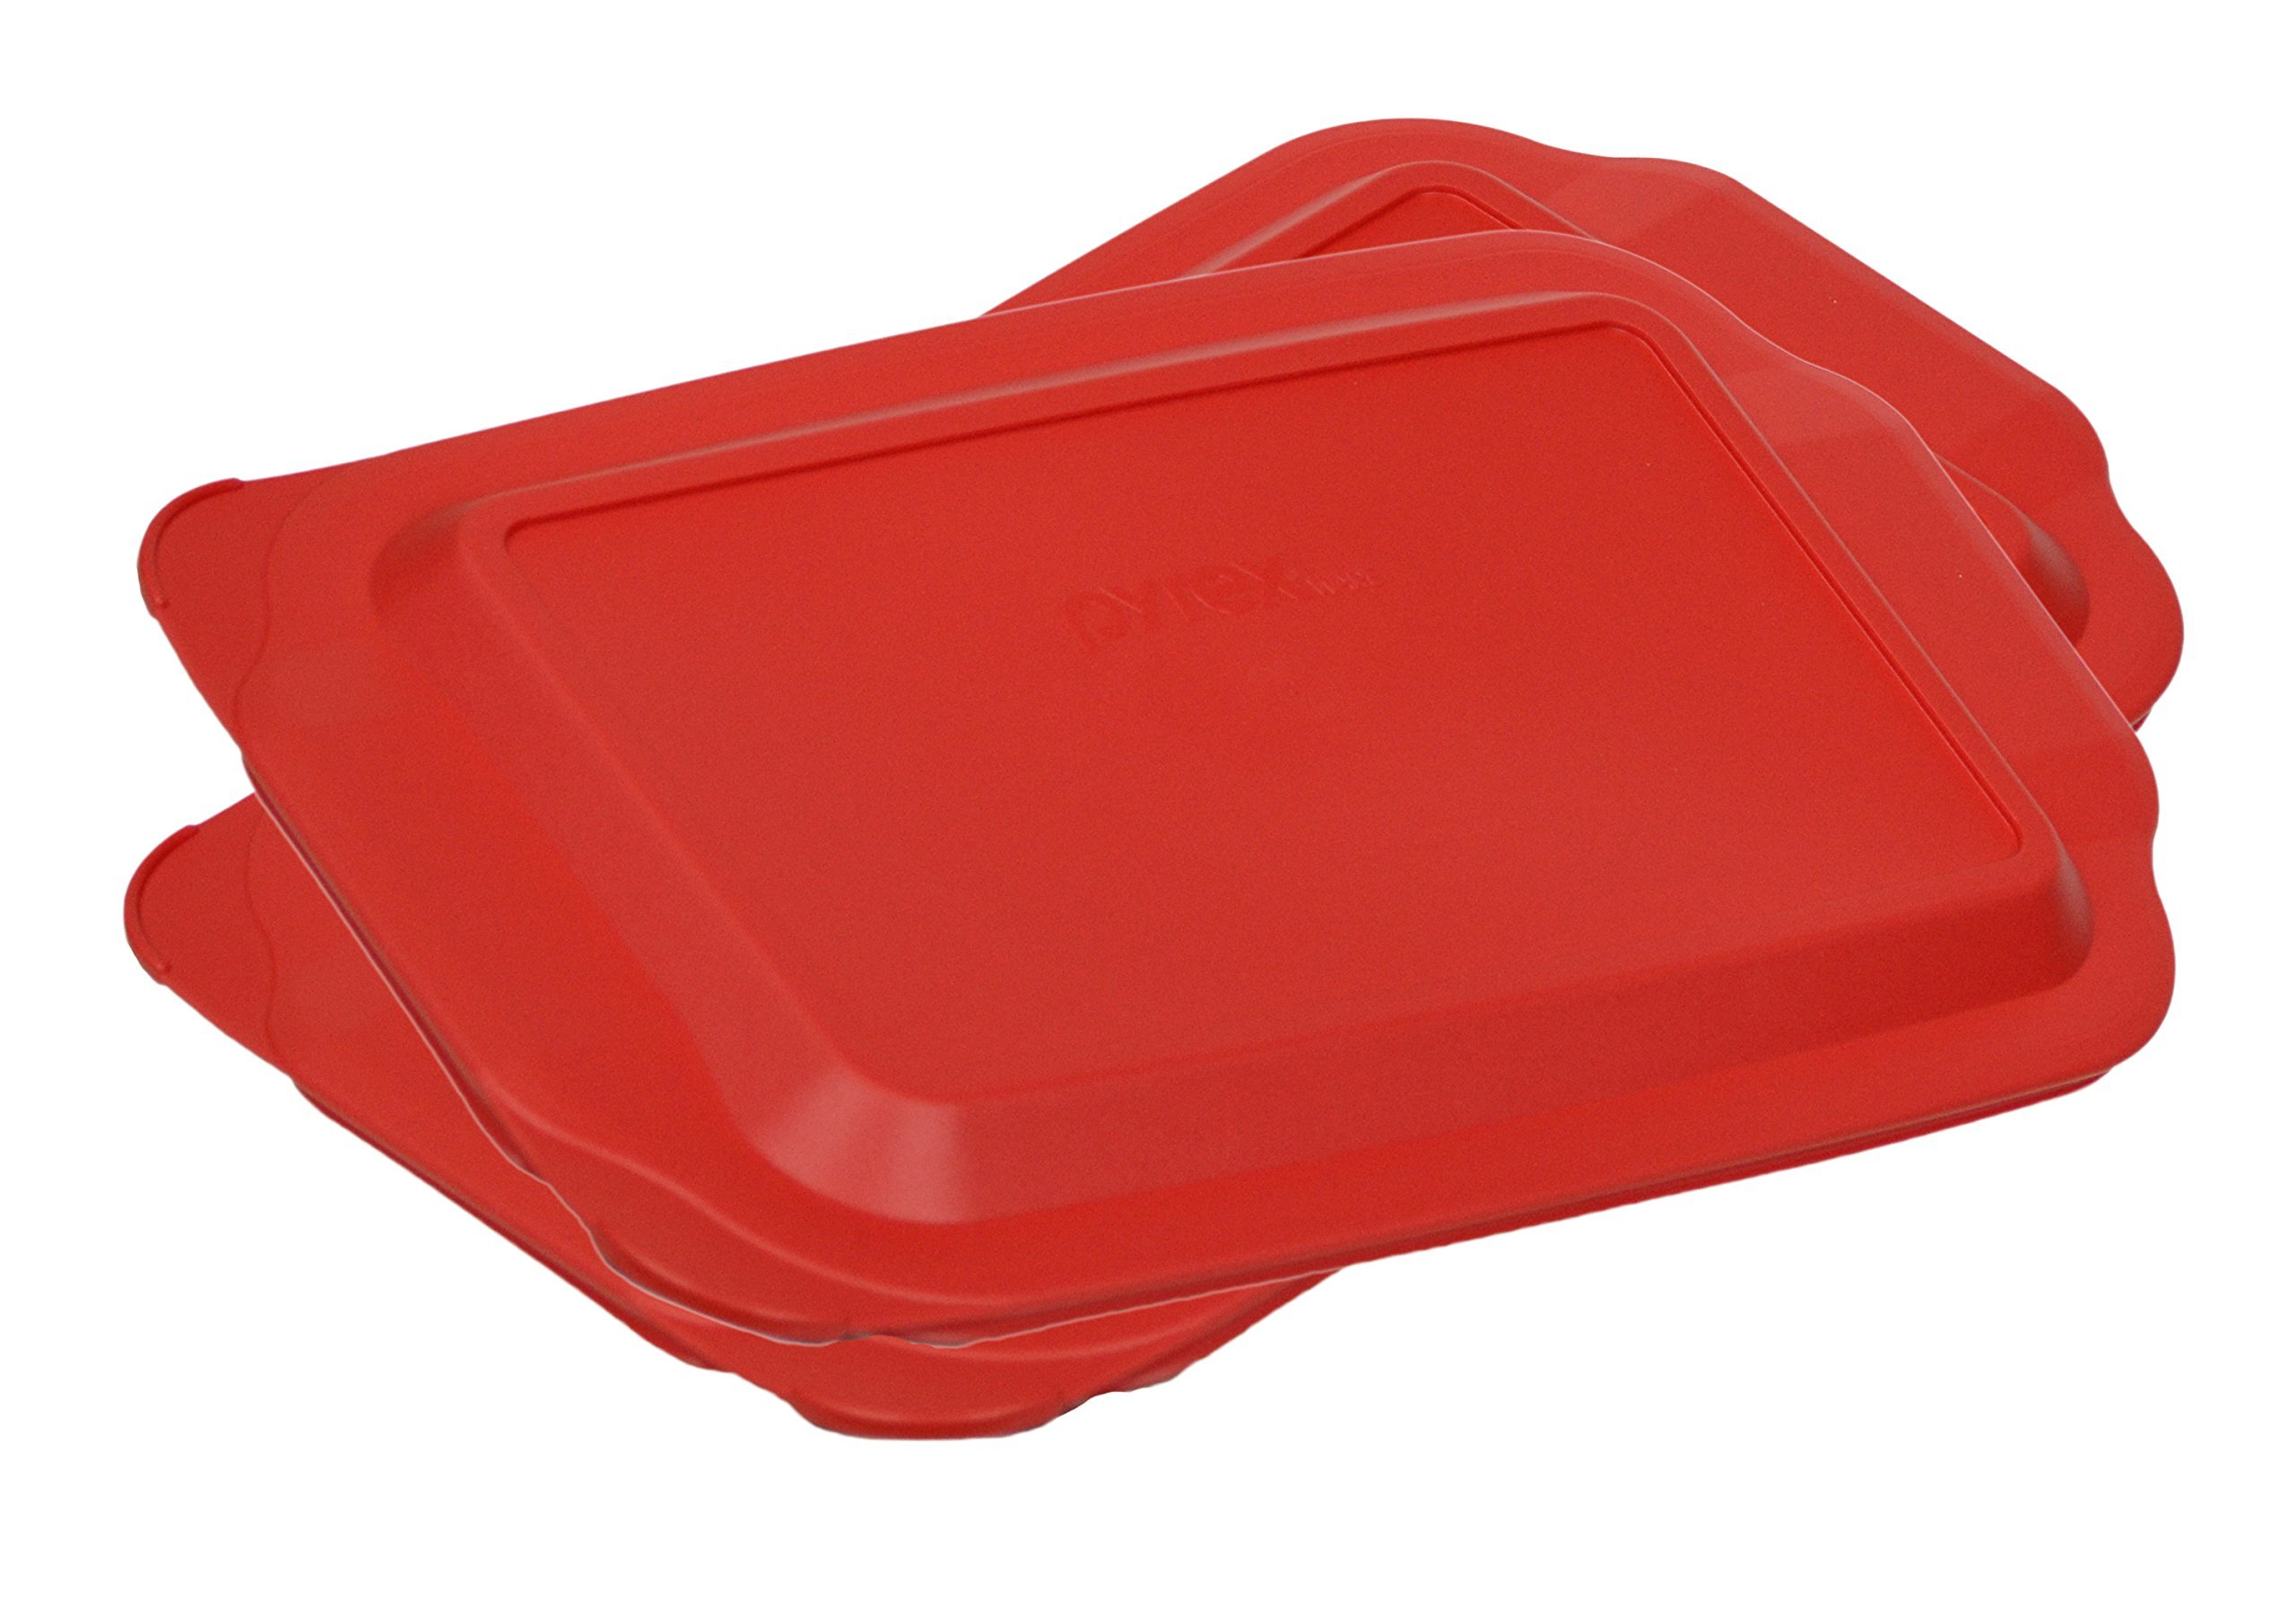 Pyrex 3 Quart 9'' x 13'' Red Rectangular Plastic Lid 233-PC for Glass Baking Dish (2 Pack) by Pyrex